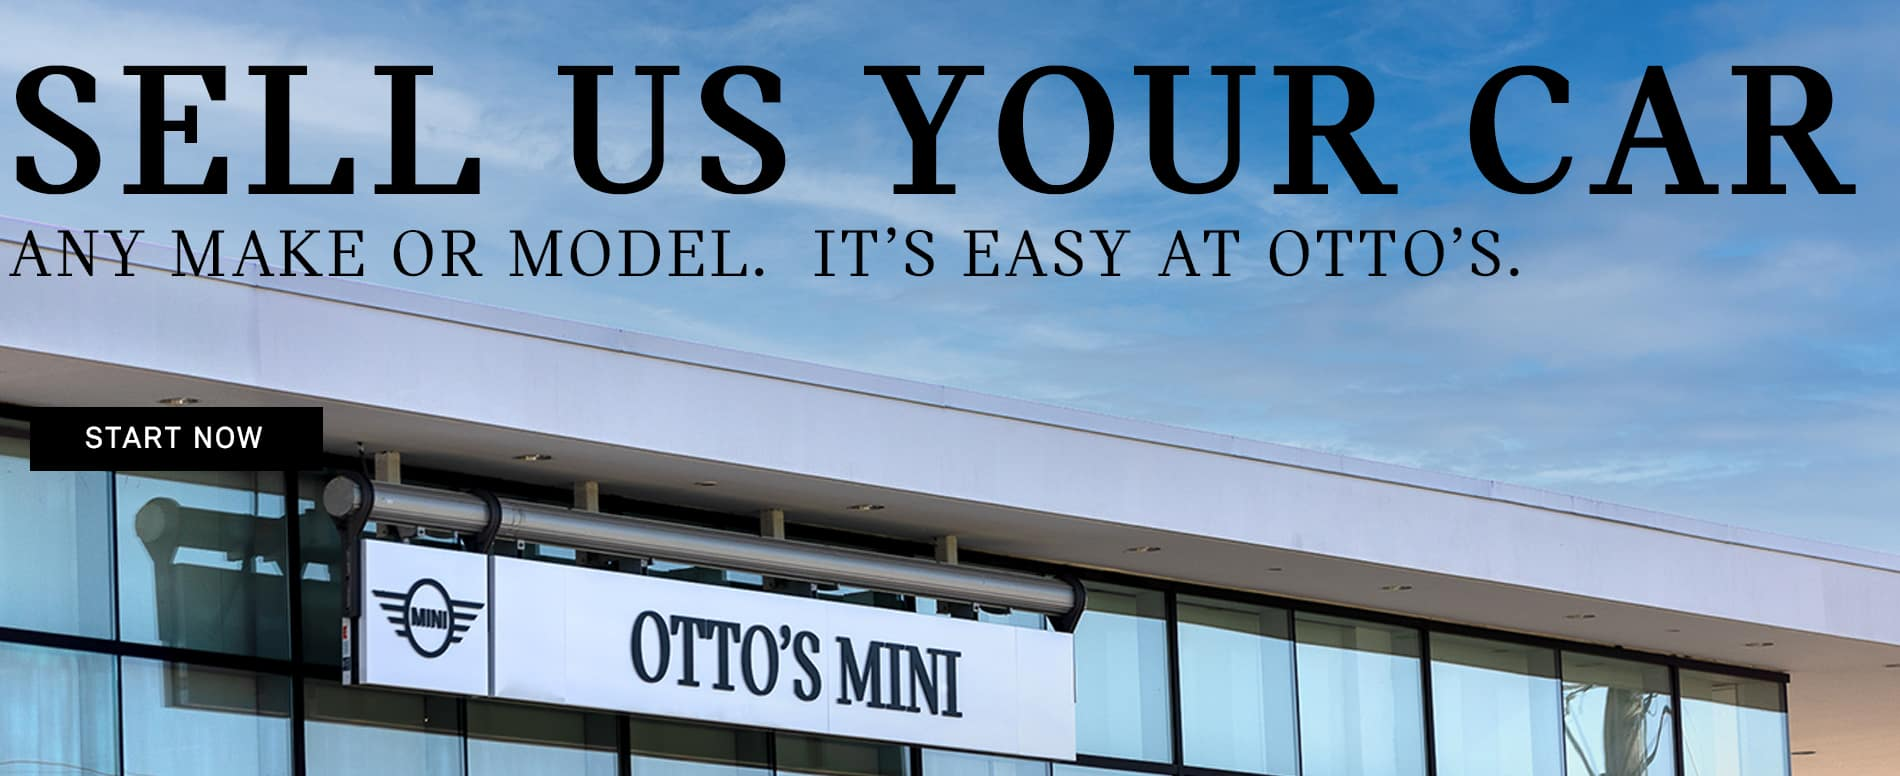 Sell Otto's MINI your used car